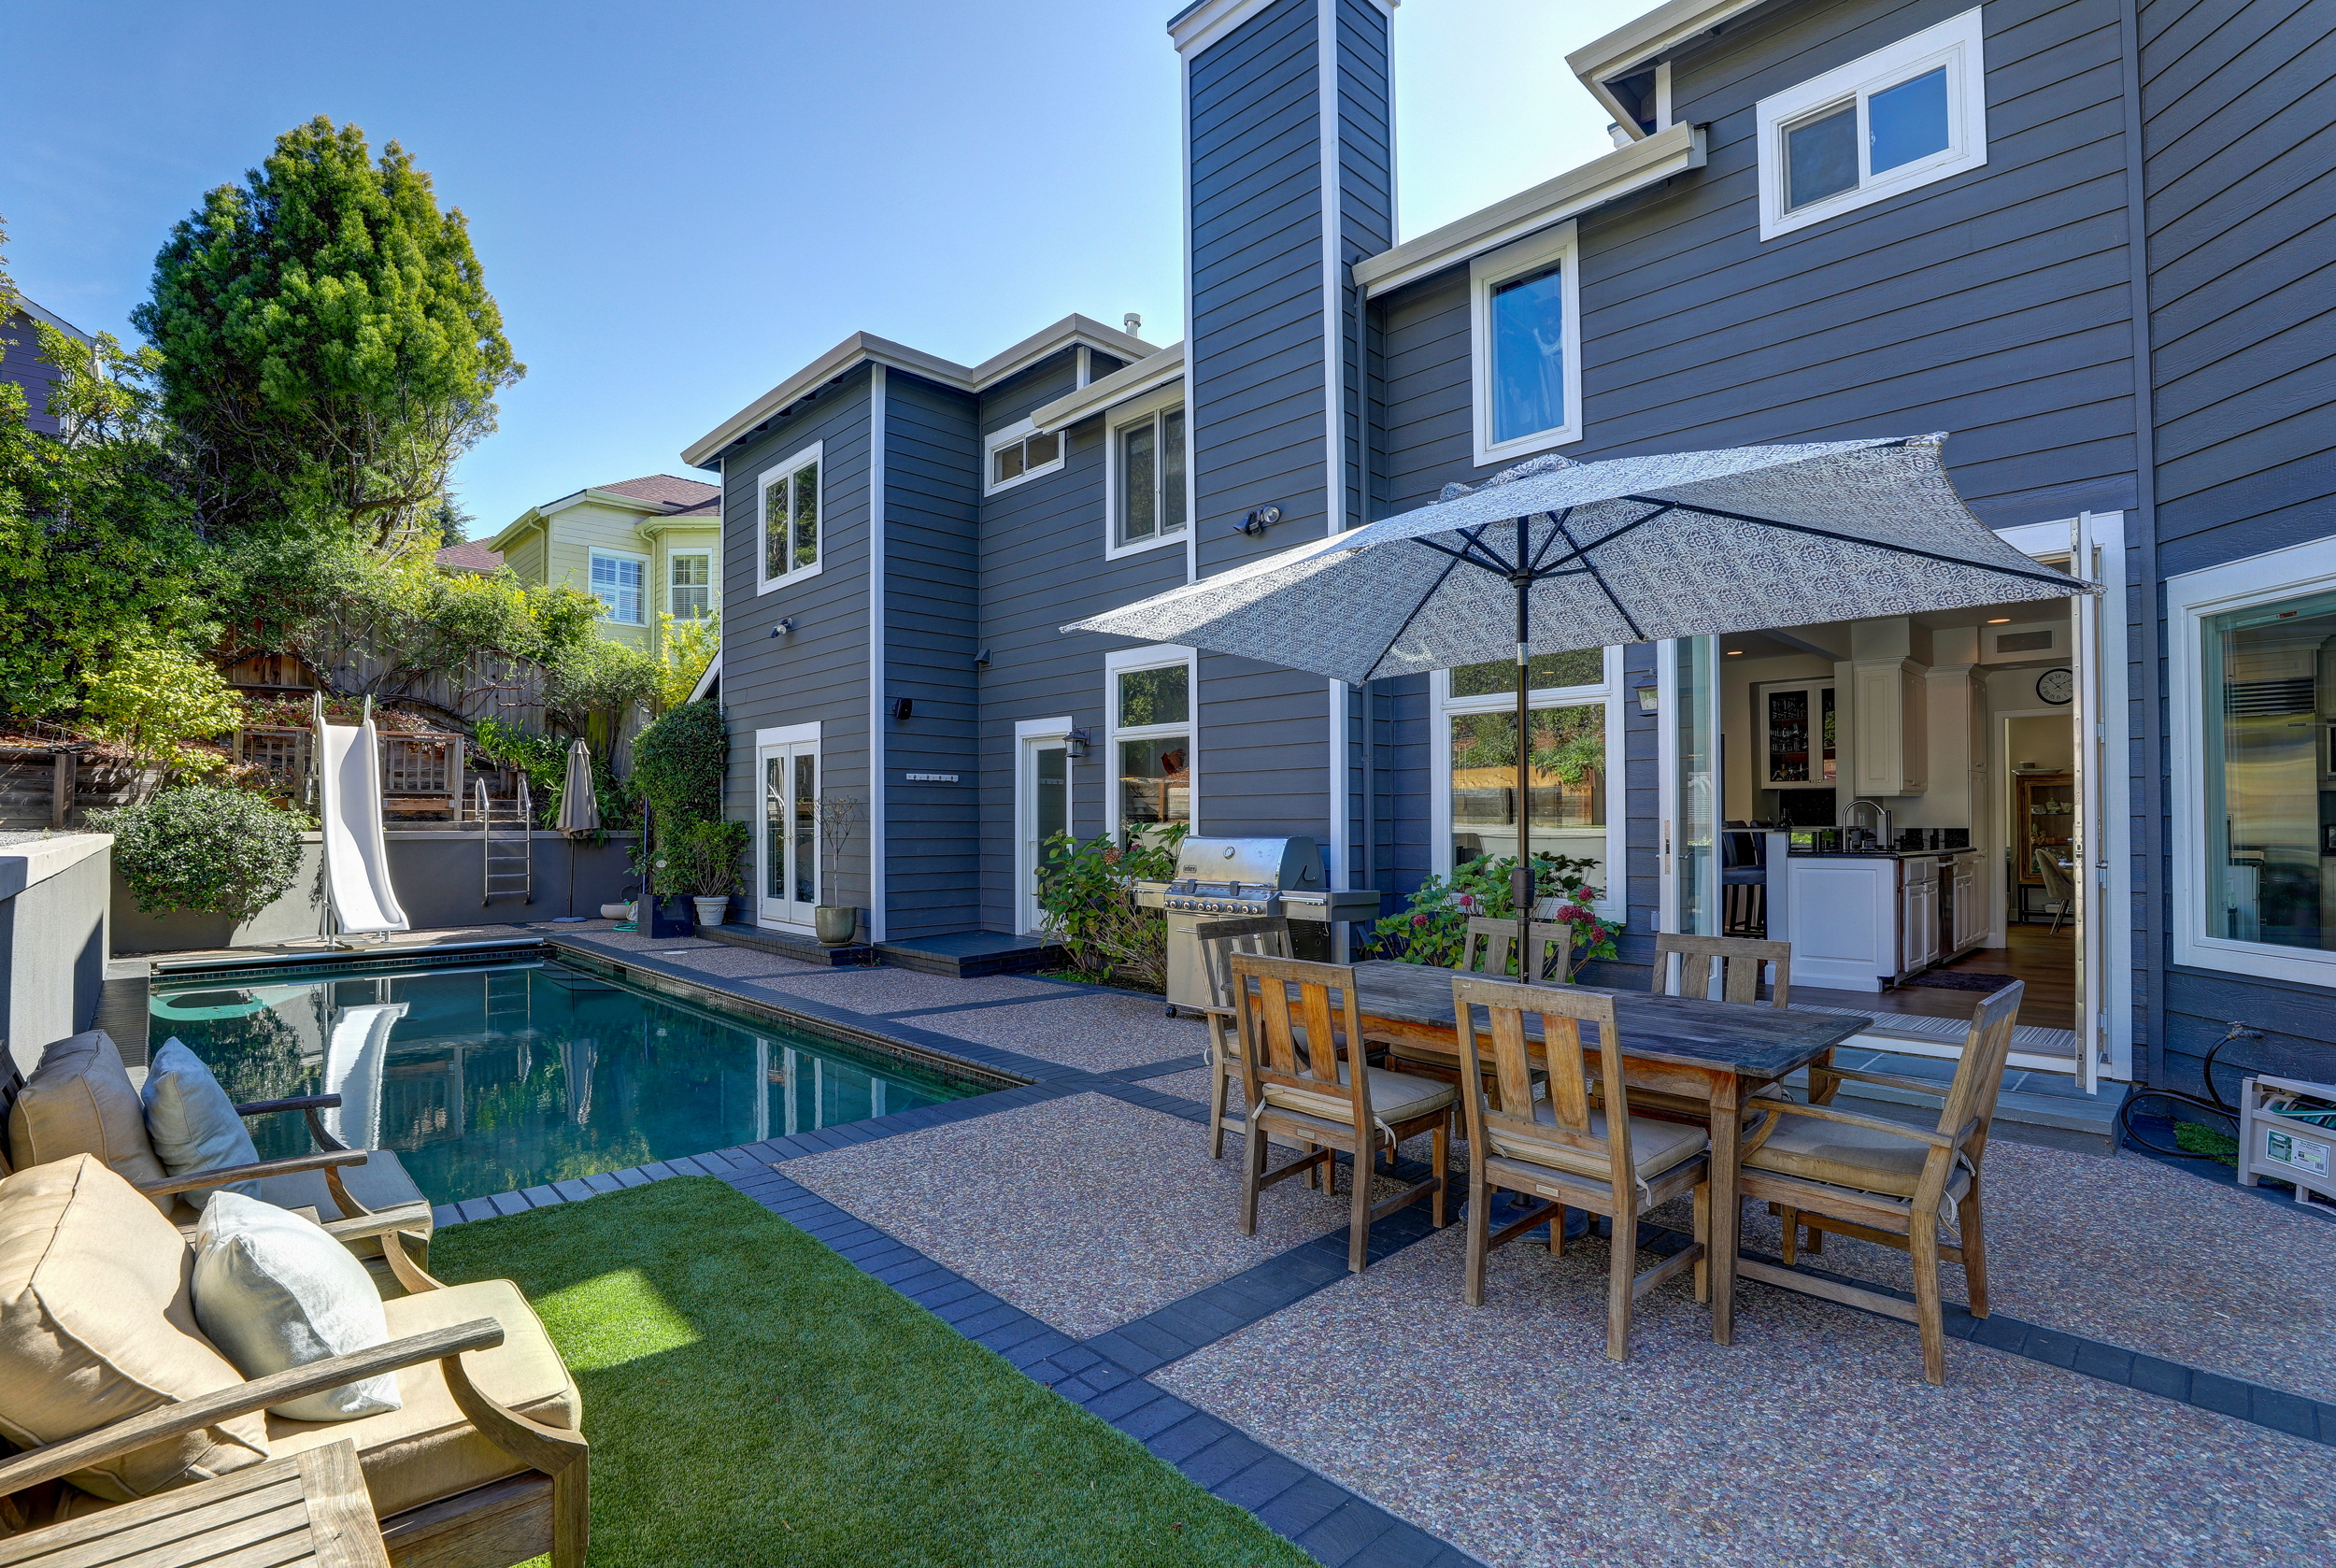 8Parkside 67 - Own Marin with Compass - Marin County Best Realtor.jpg